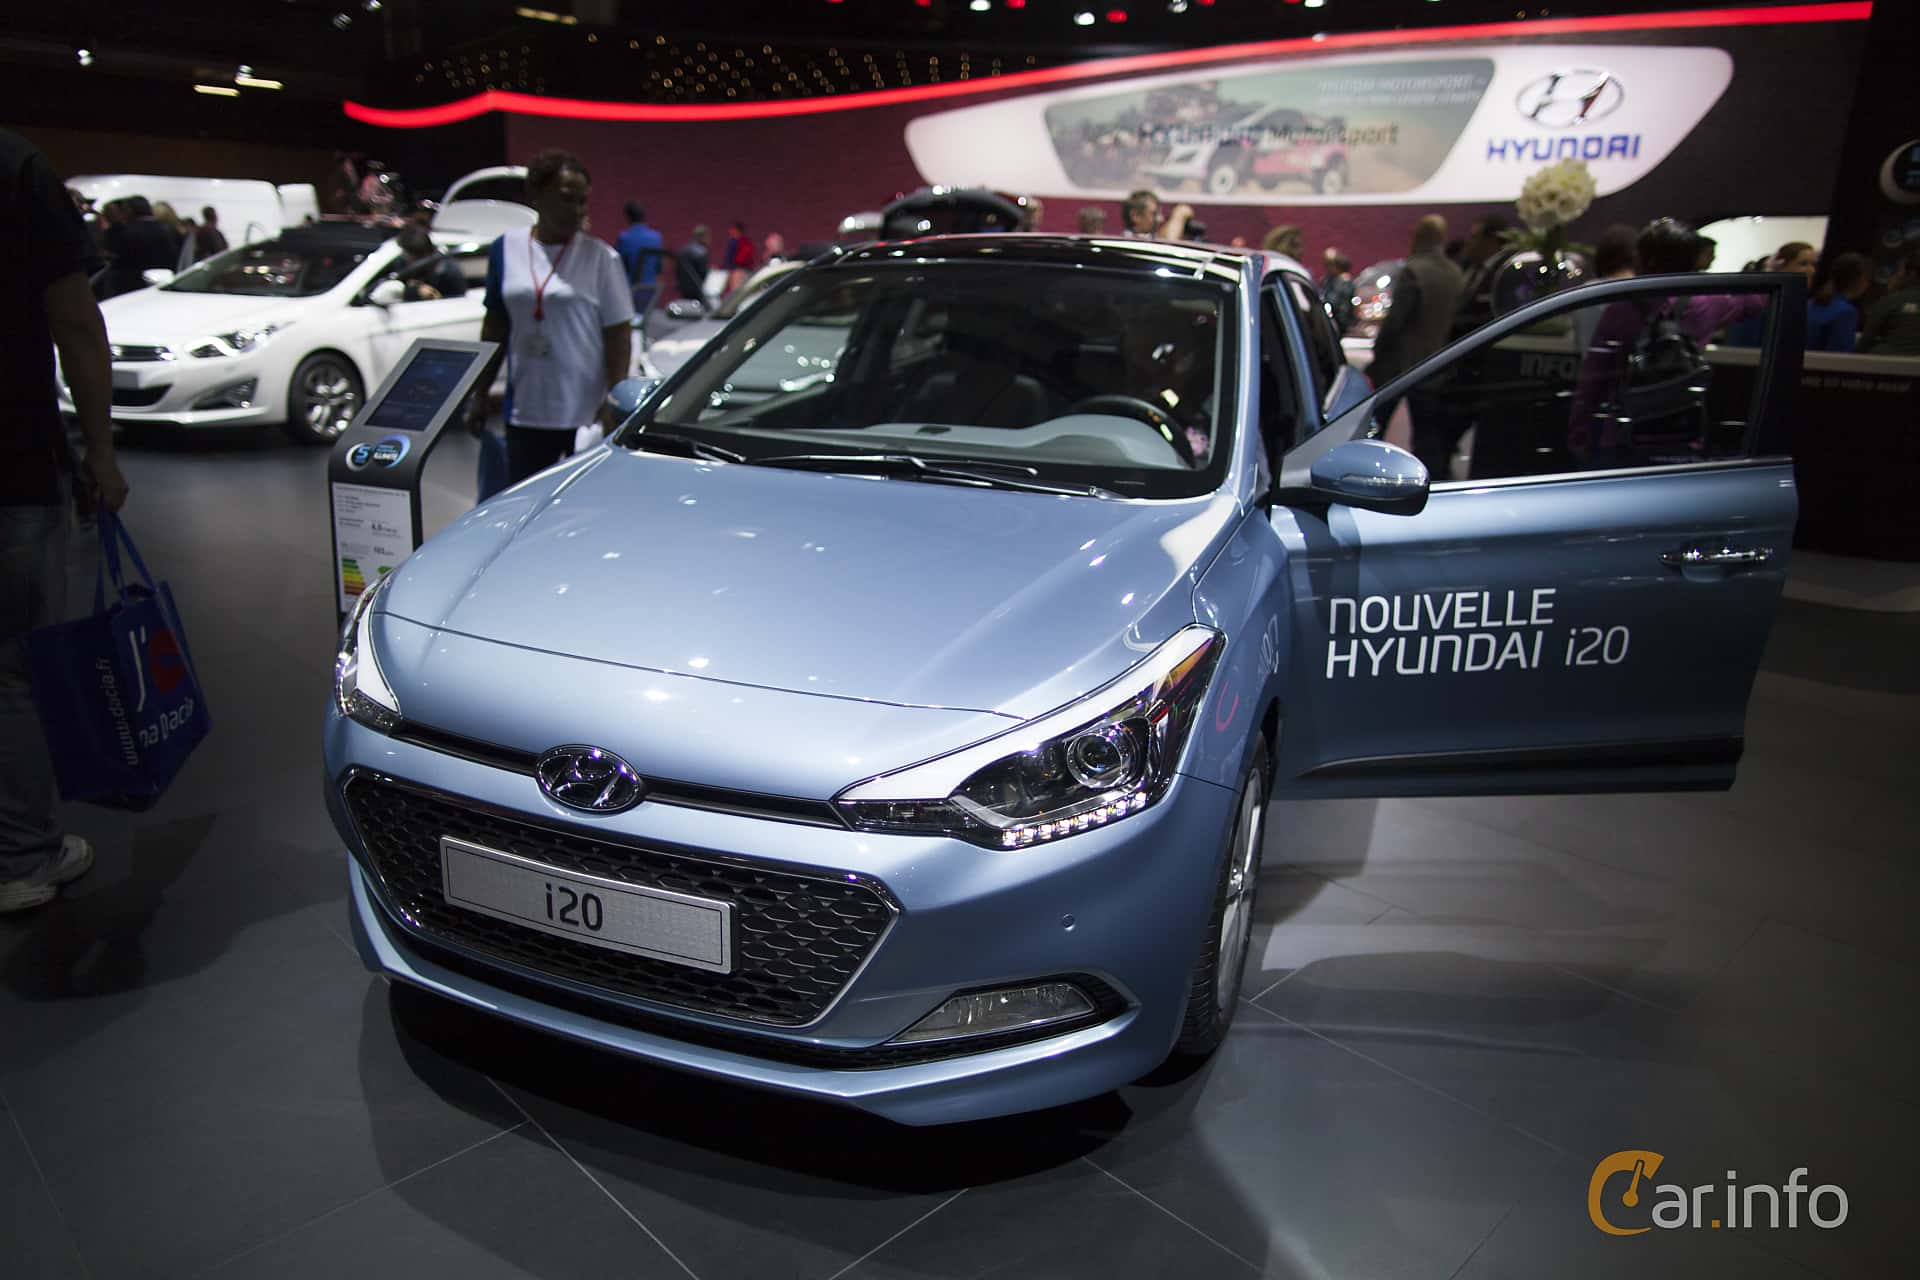 Front/Side of Hyundai i20 1.1 CRDi Manual, 75ps, 2015 at Paris Motor